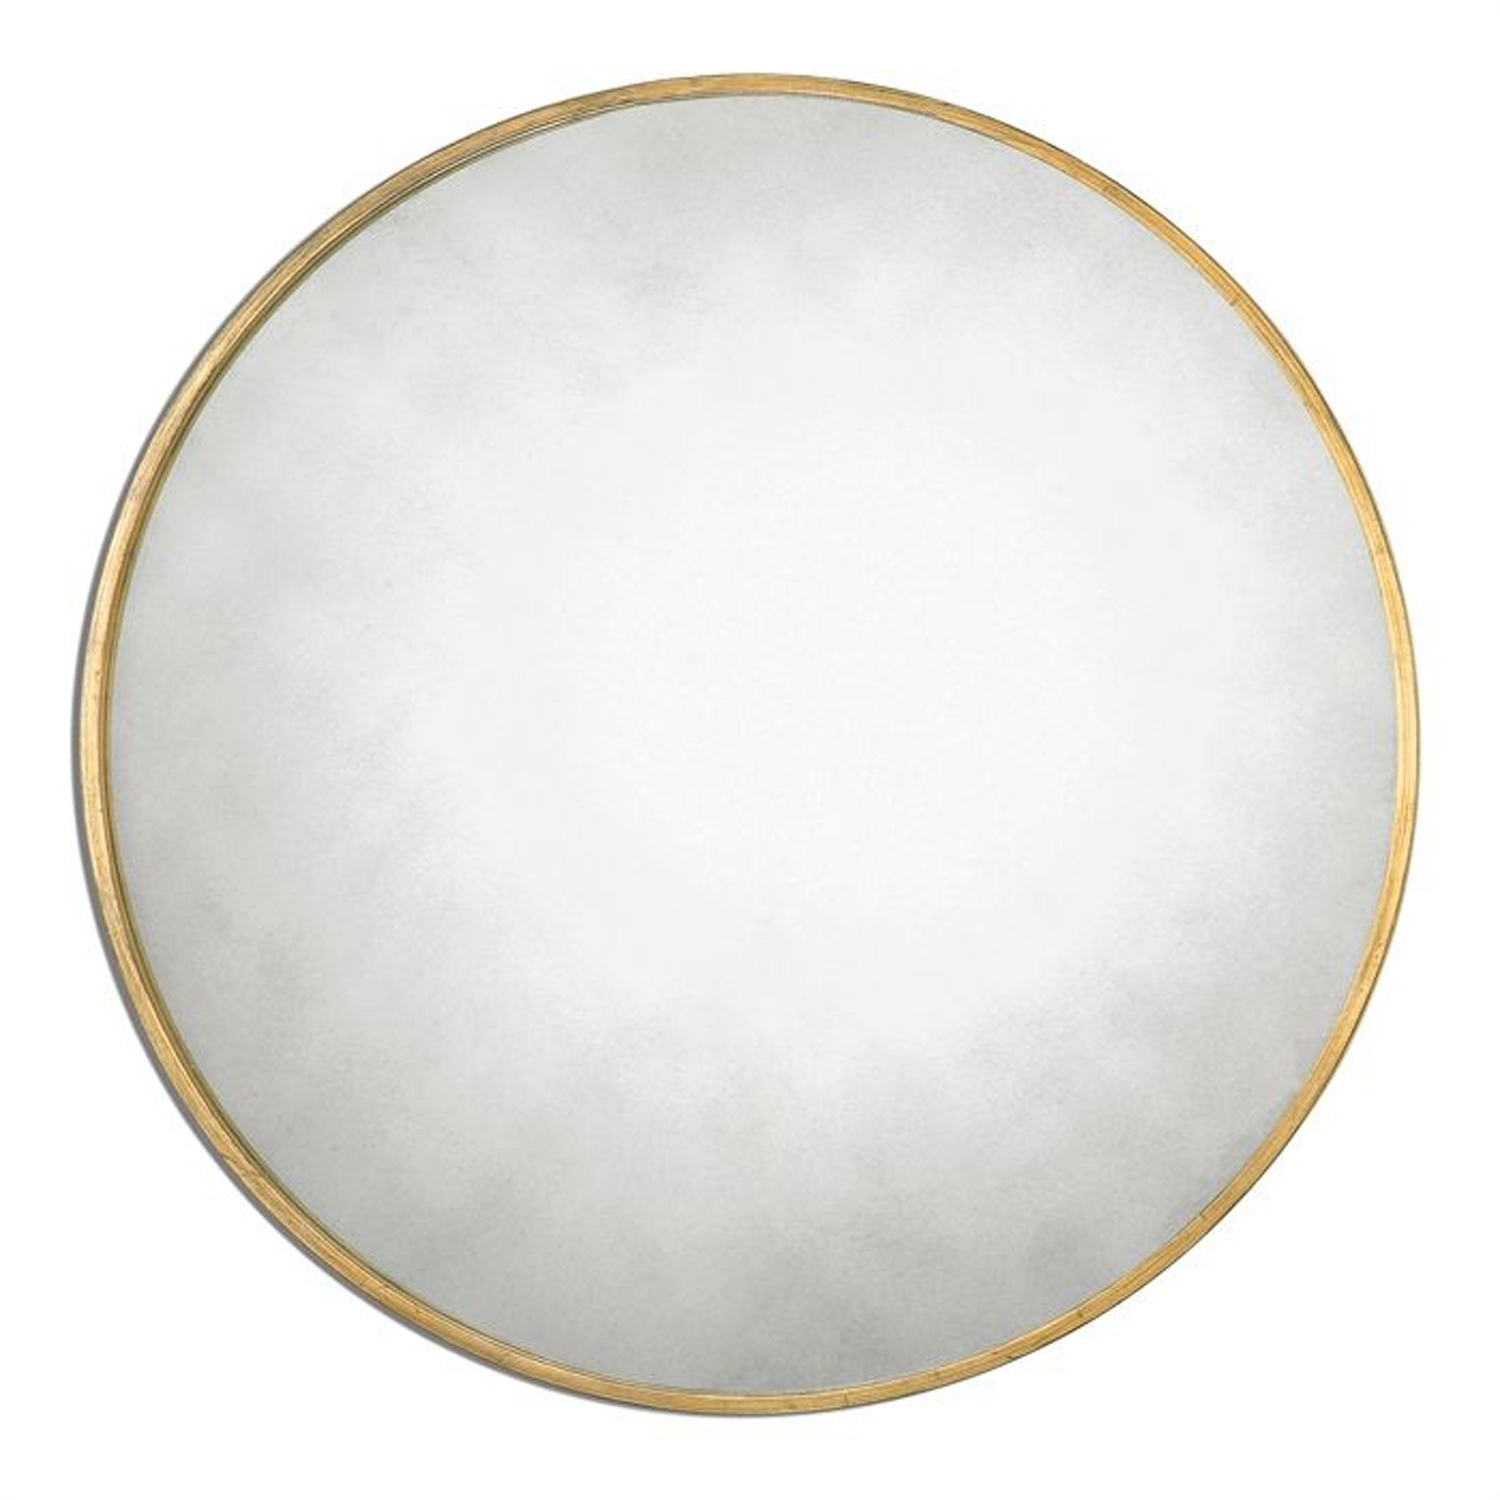 Unique Large Round Mirror 17 For With Large Round Mirror Kitchen For Large Round Mirrors For Sale (Photo 10 of 15)